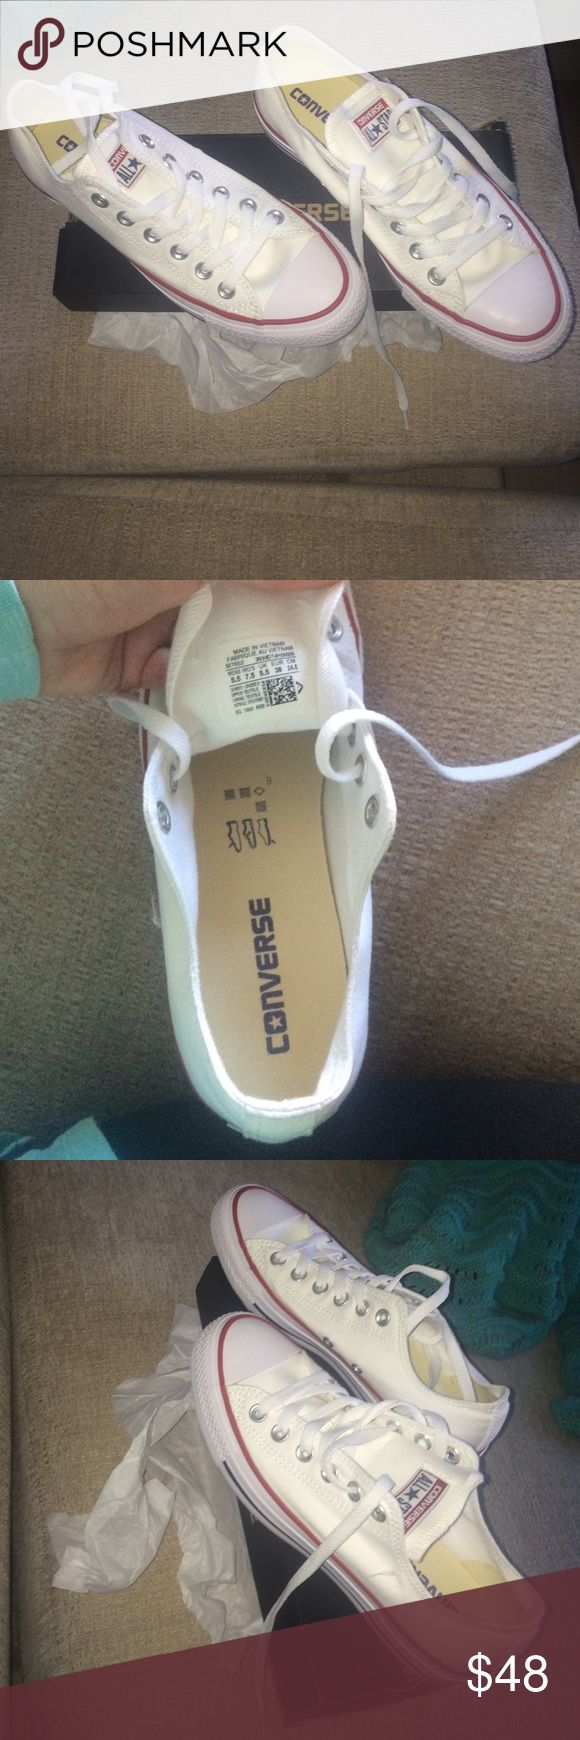 White low top converse ! Never worn, woman's size 7.5 converse Converse Shoes Sneakers